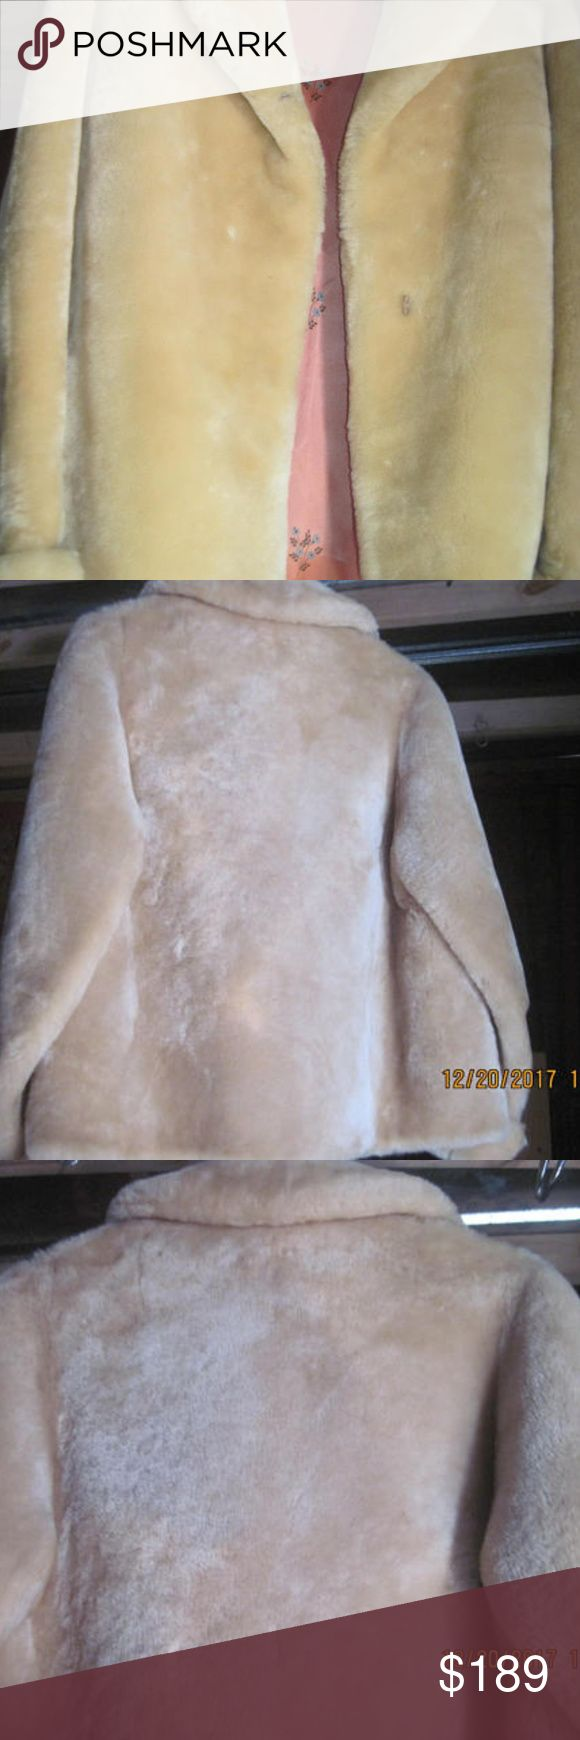 """Women's Short Vintage Beige Fur Coat, Size M Up for your consideration is a Women's Beige Short Length Fur Coat in a pre-owned, used, and vintage condition.  It features two front slip pockets, a pink floral patterned fabric interior lining, and folding sleeve cuffs.  There are holes, open seams, repairs, or missing clasp.  There is one front loop cord closure.  There is no manufacture tag or size tag. However,  the measurements reveal a size medium or a 14.  Length=26.5"""", Shoulders= 16""""…"""